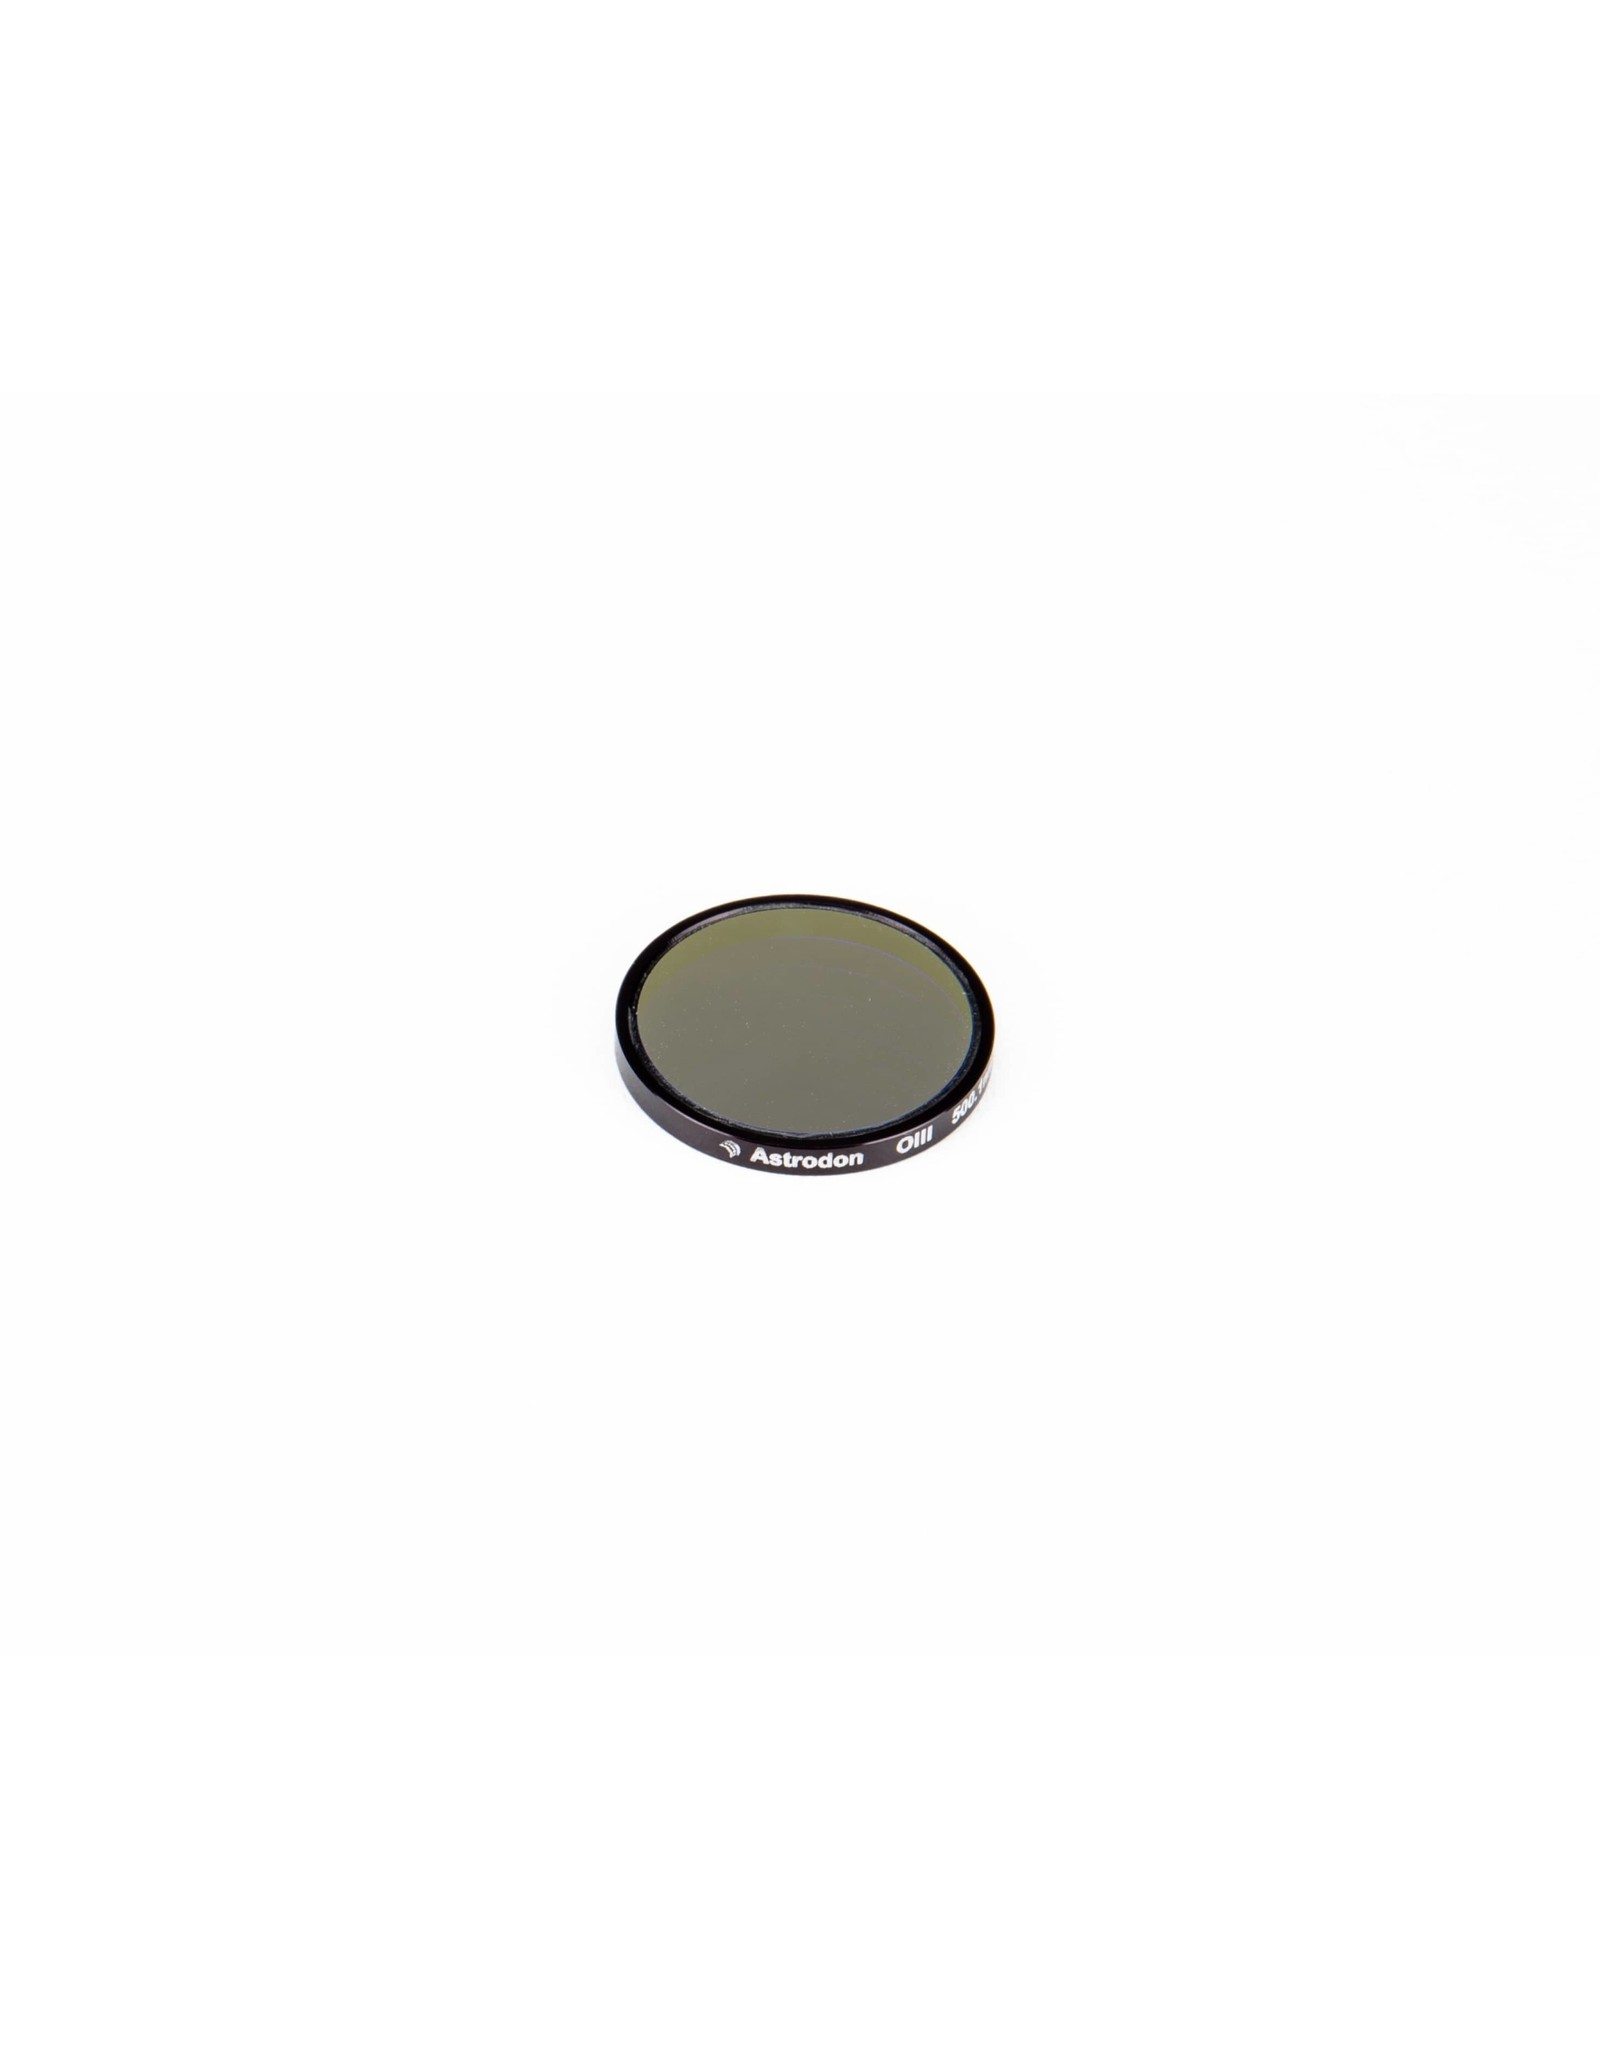 Astrodon Astrodon 3 nm Narrowband Filters – OIII 3nm